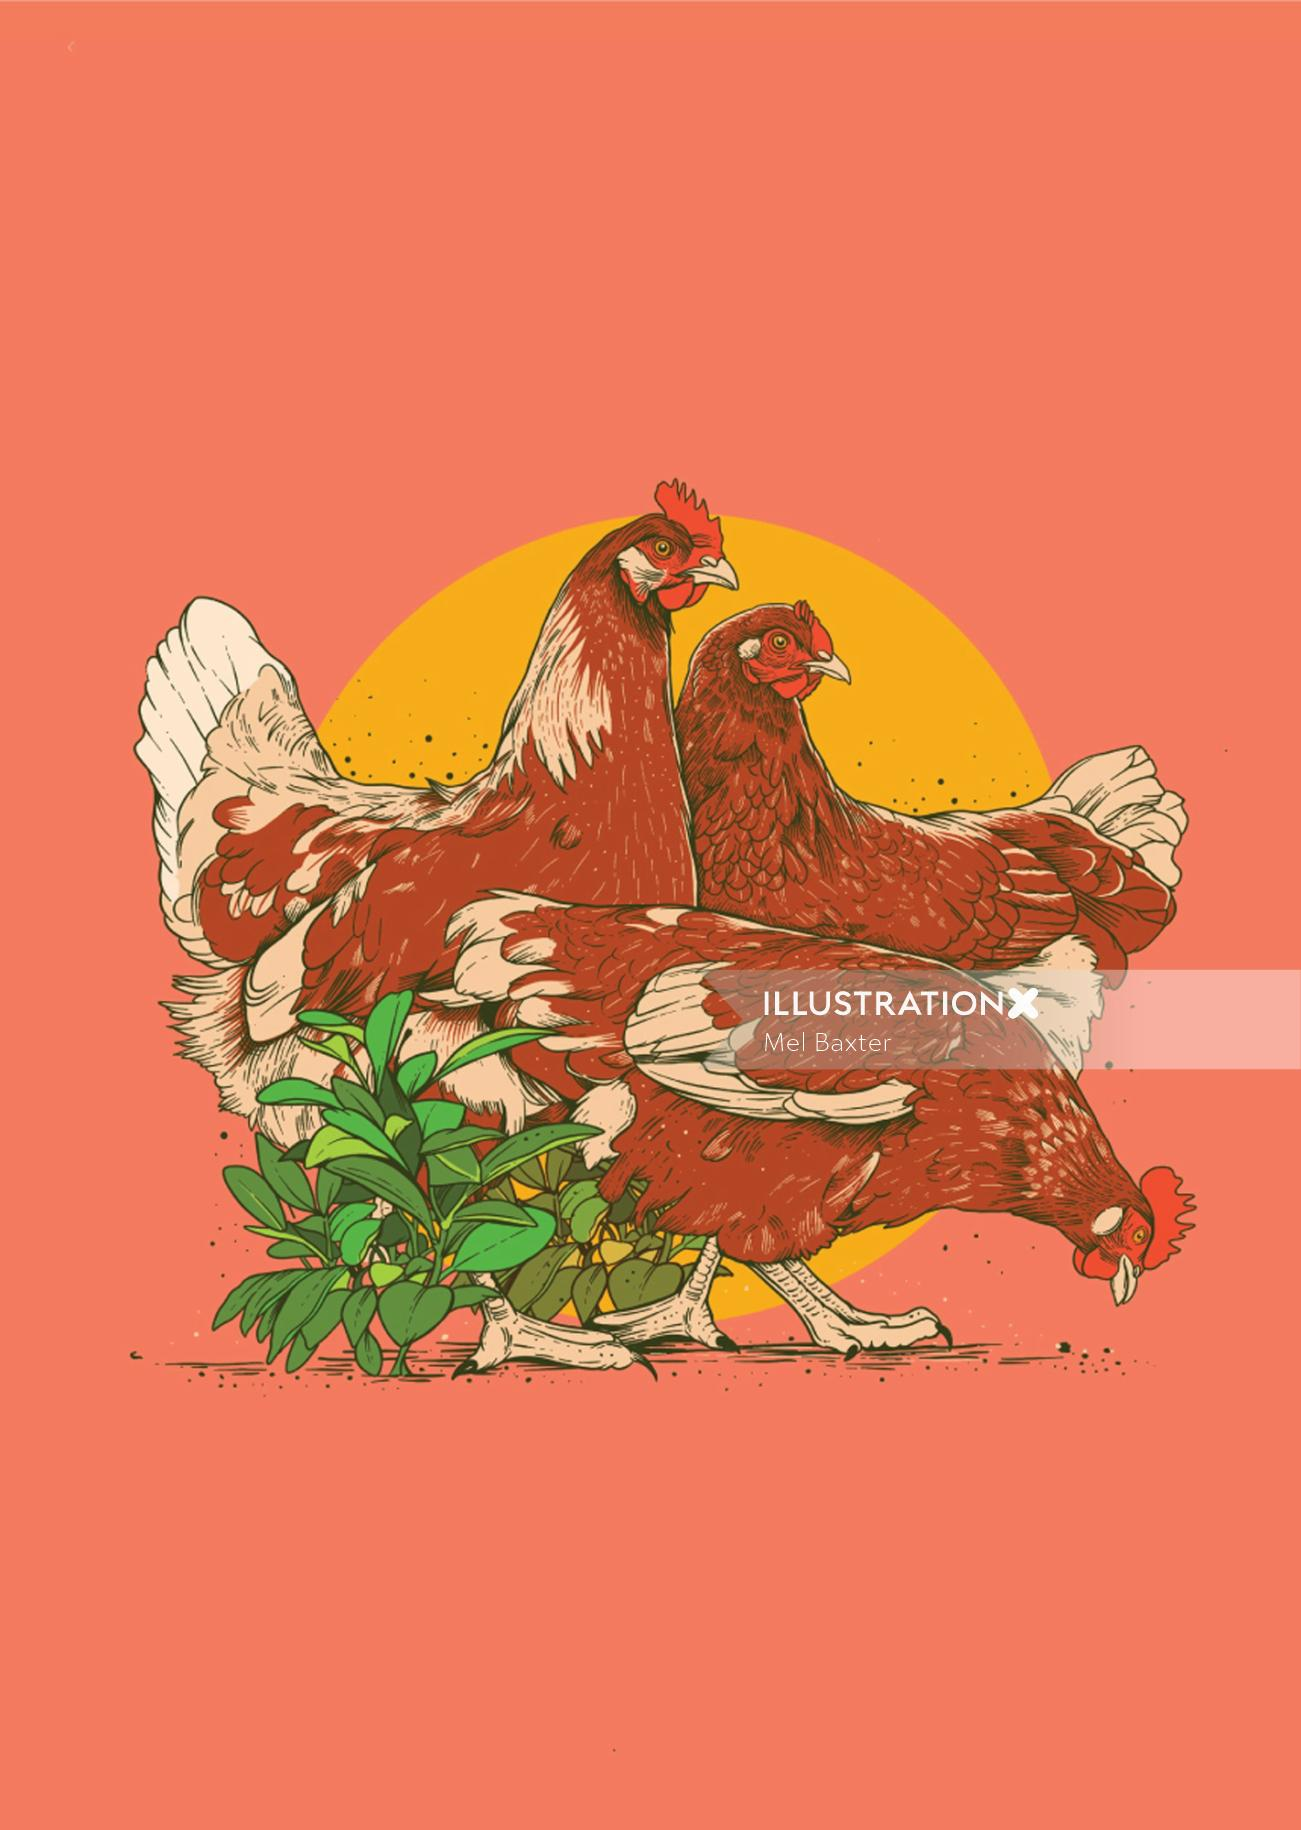 Graphic design of Hens by Mel Baxter